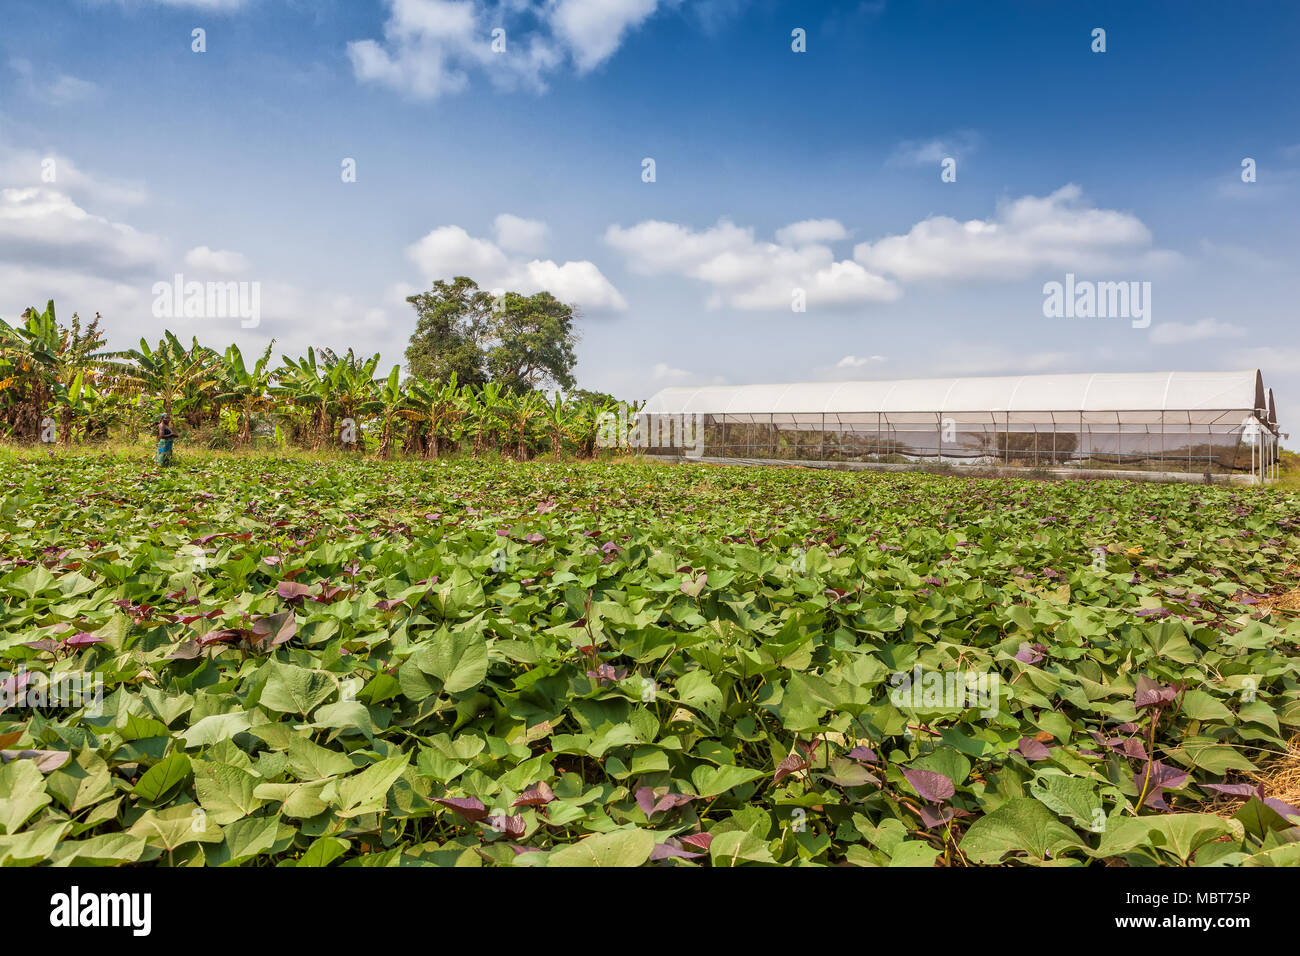 Greenhouse in African plantation, Cabinda. Angola. - Stock Image